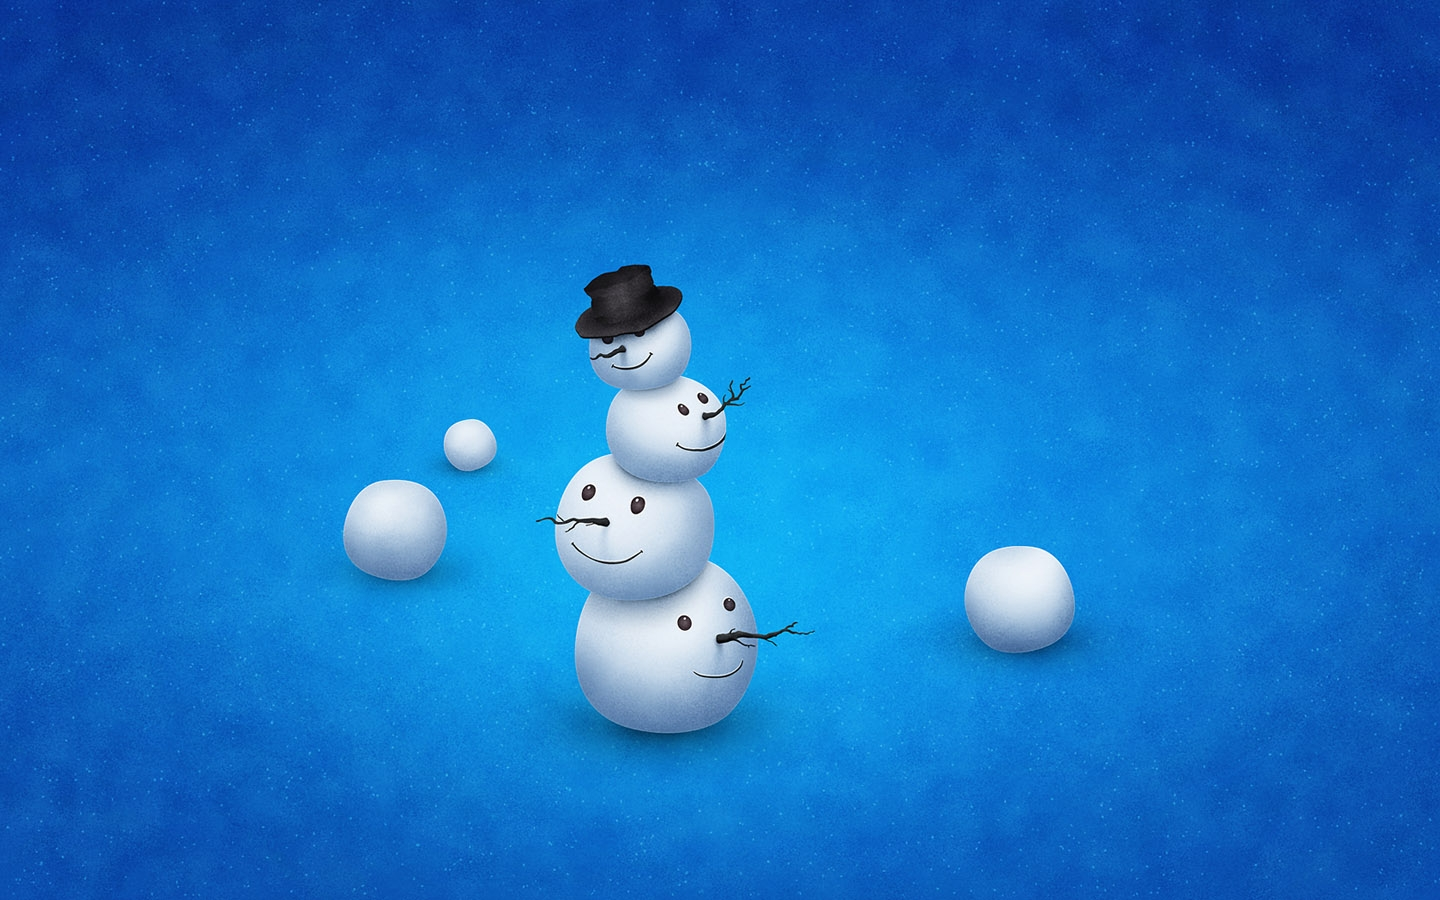 Snowman Art Wallpaper